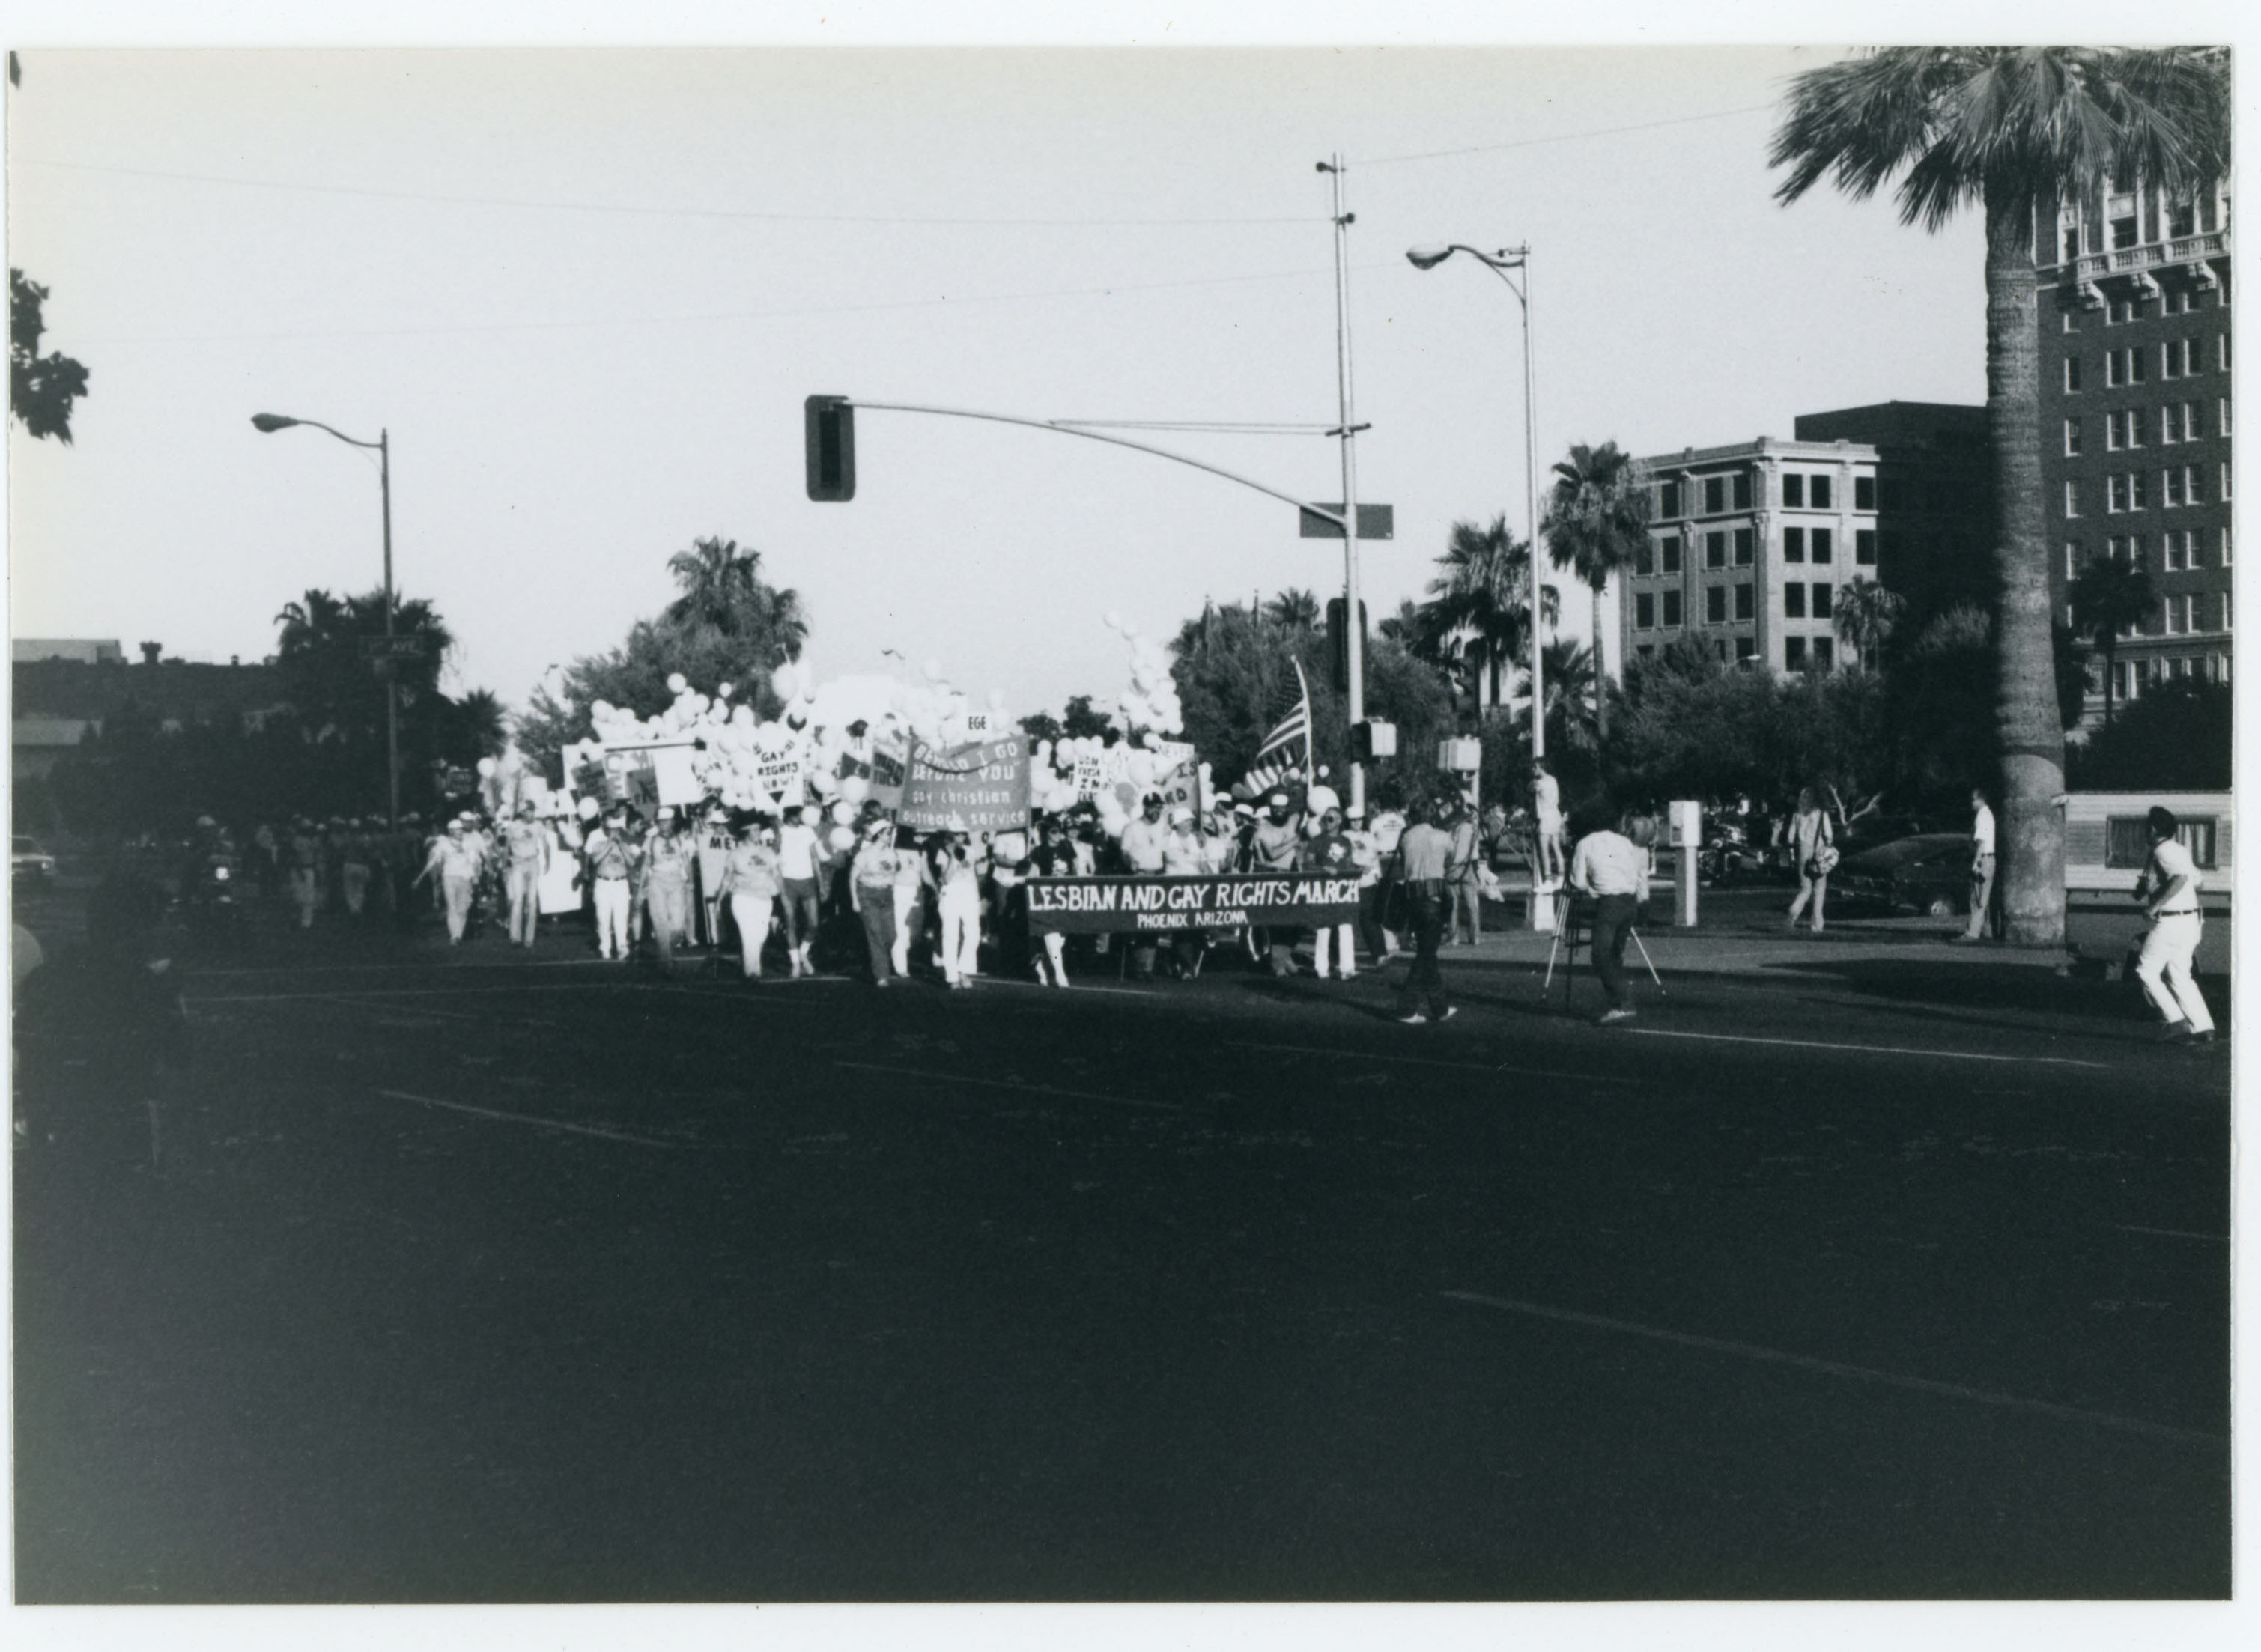 Lesbian and Gay Rights March; Phoenix, Arizona; 1982